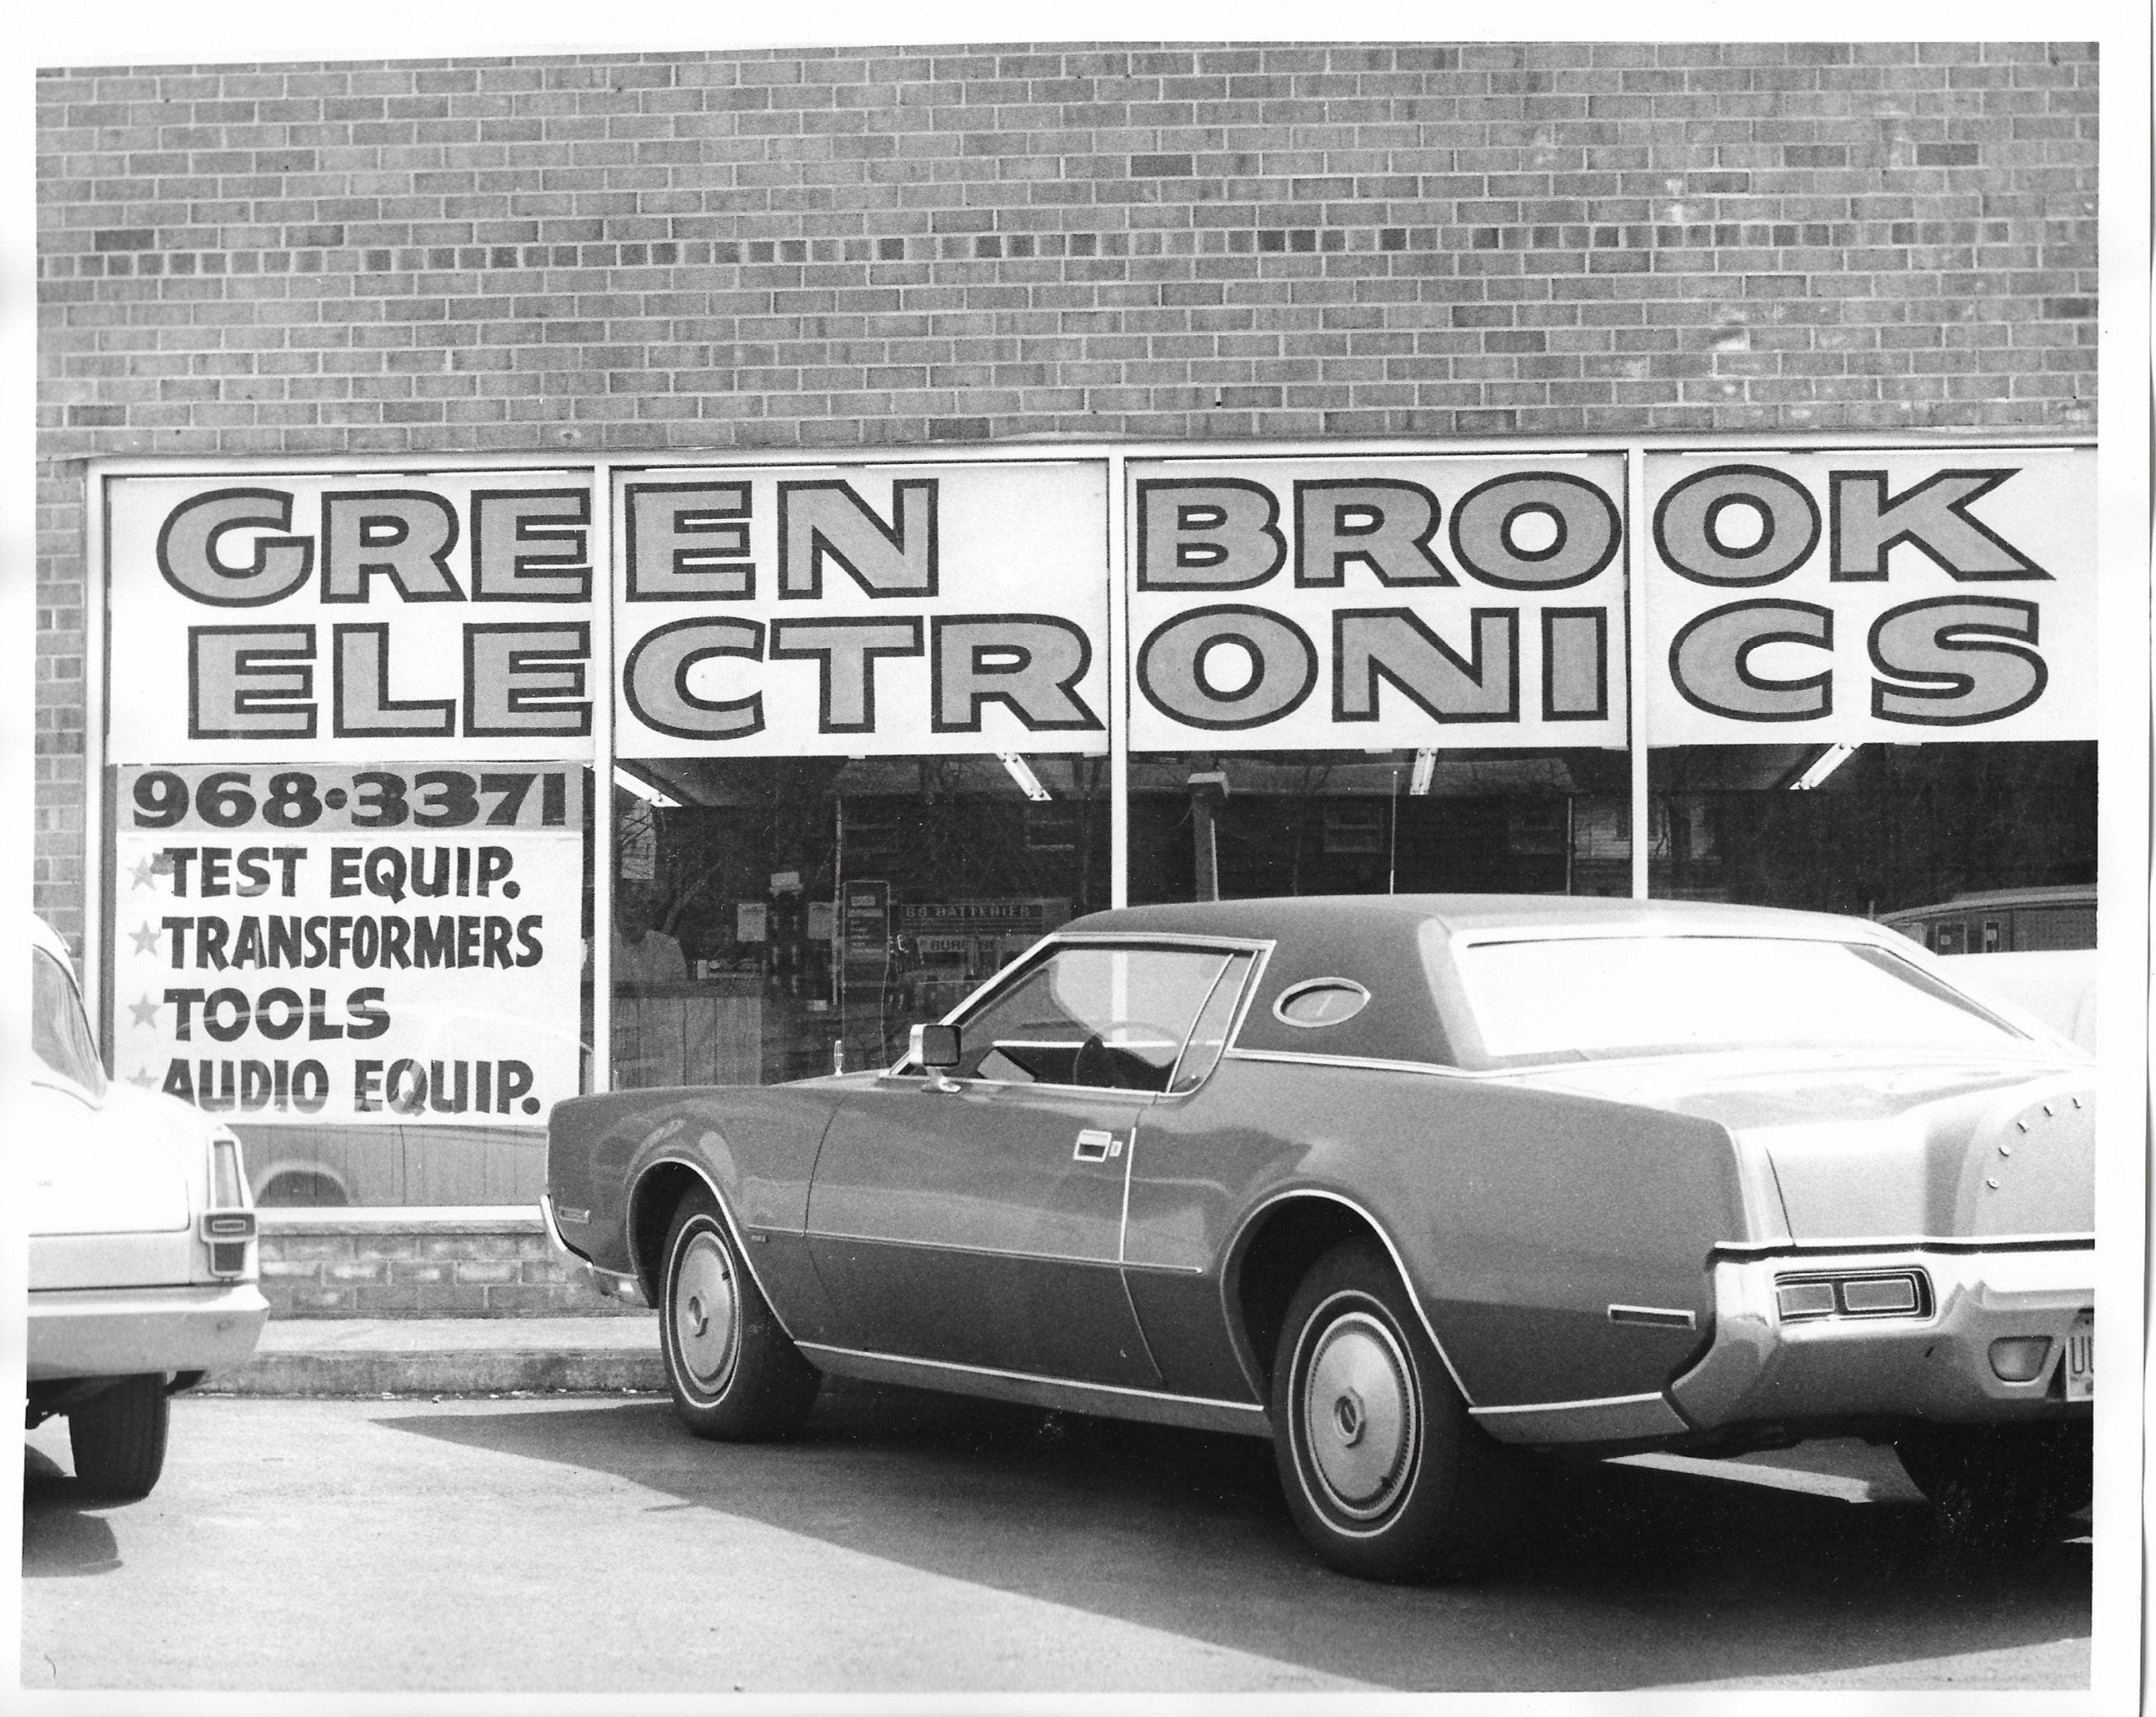 Green Brook Electronics 1974